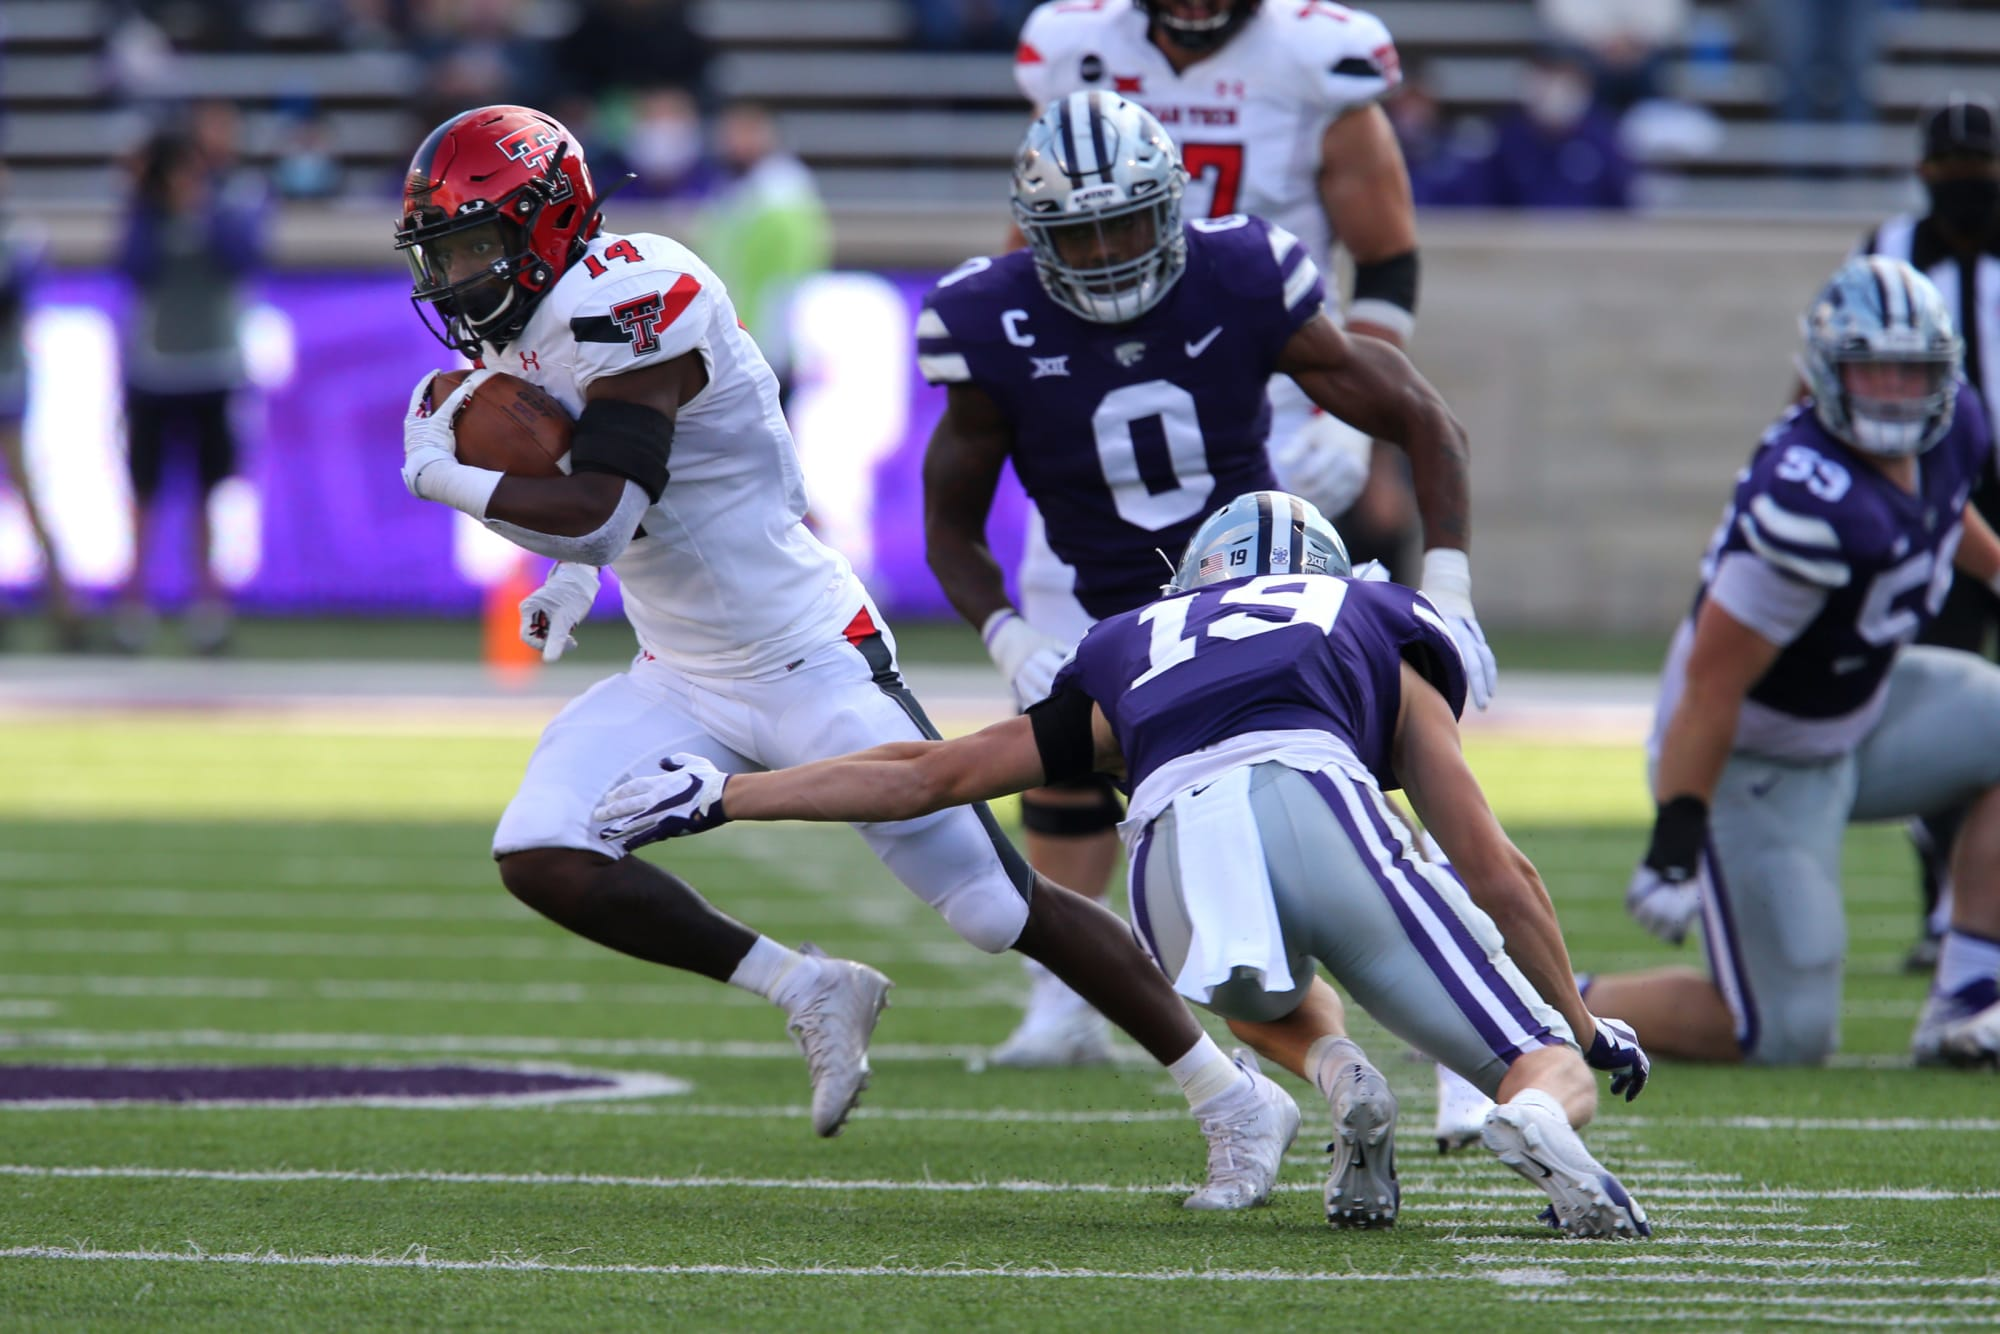 Texas Tech football: 3 Red Raiders that have been pleasant surprises in 2020